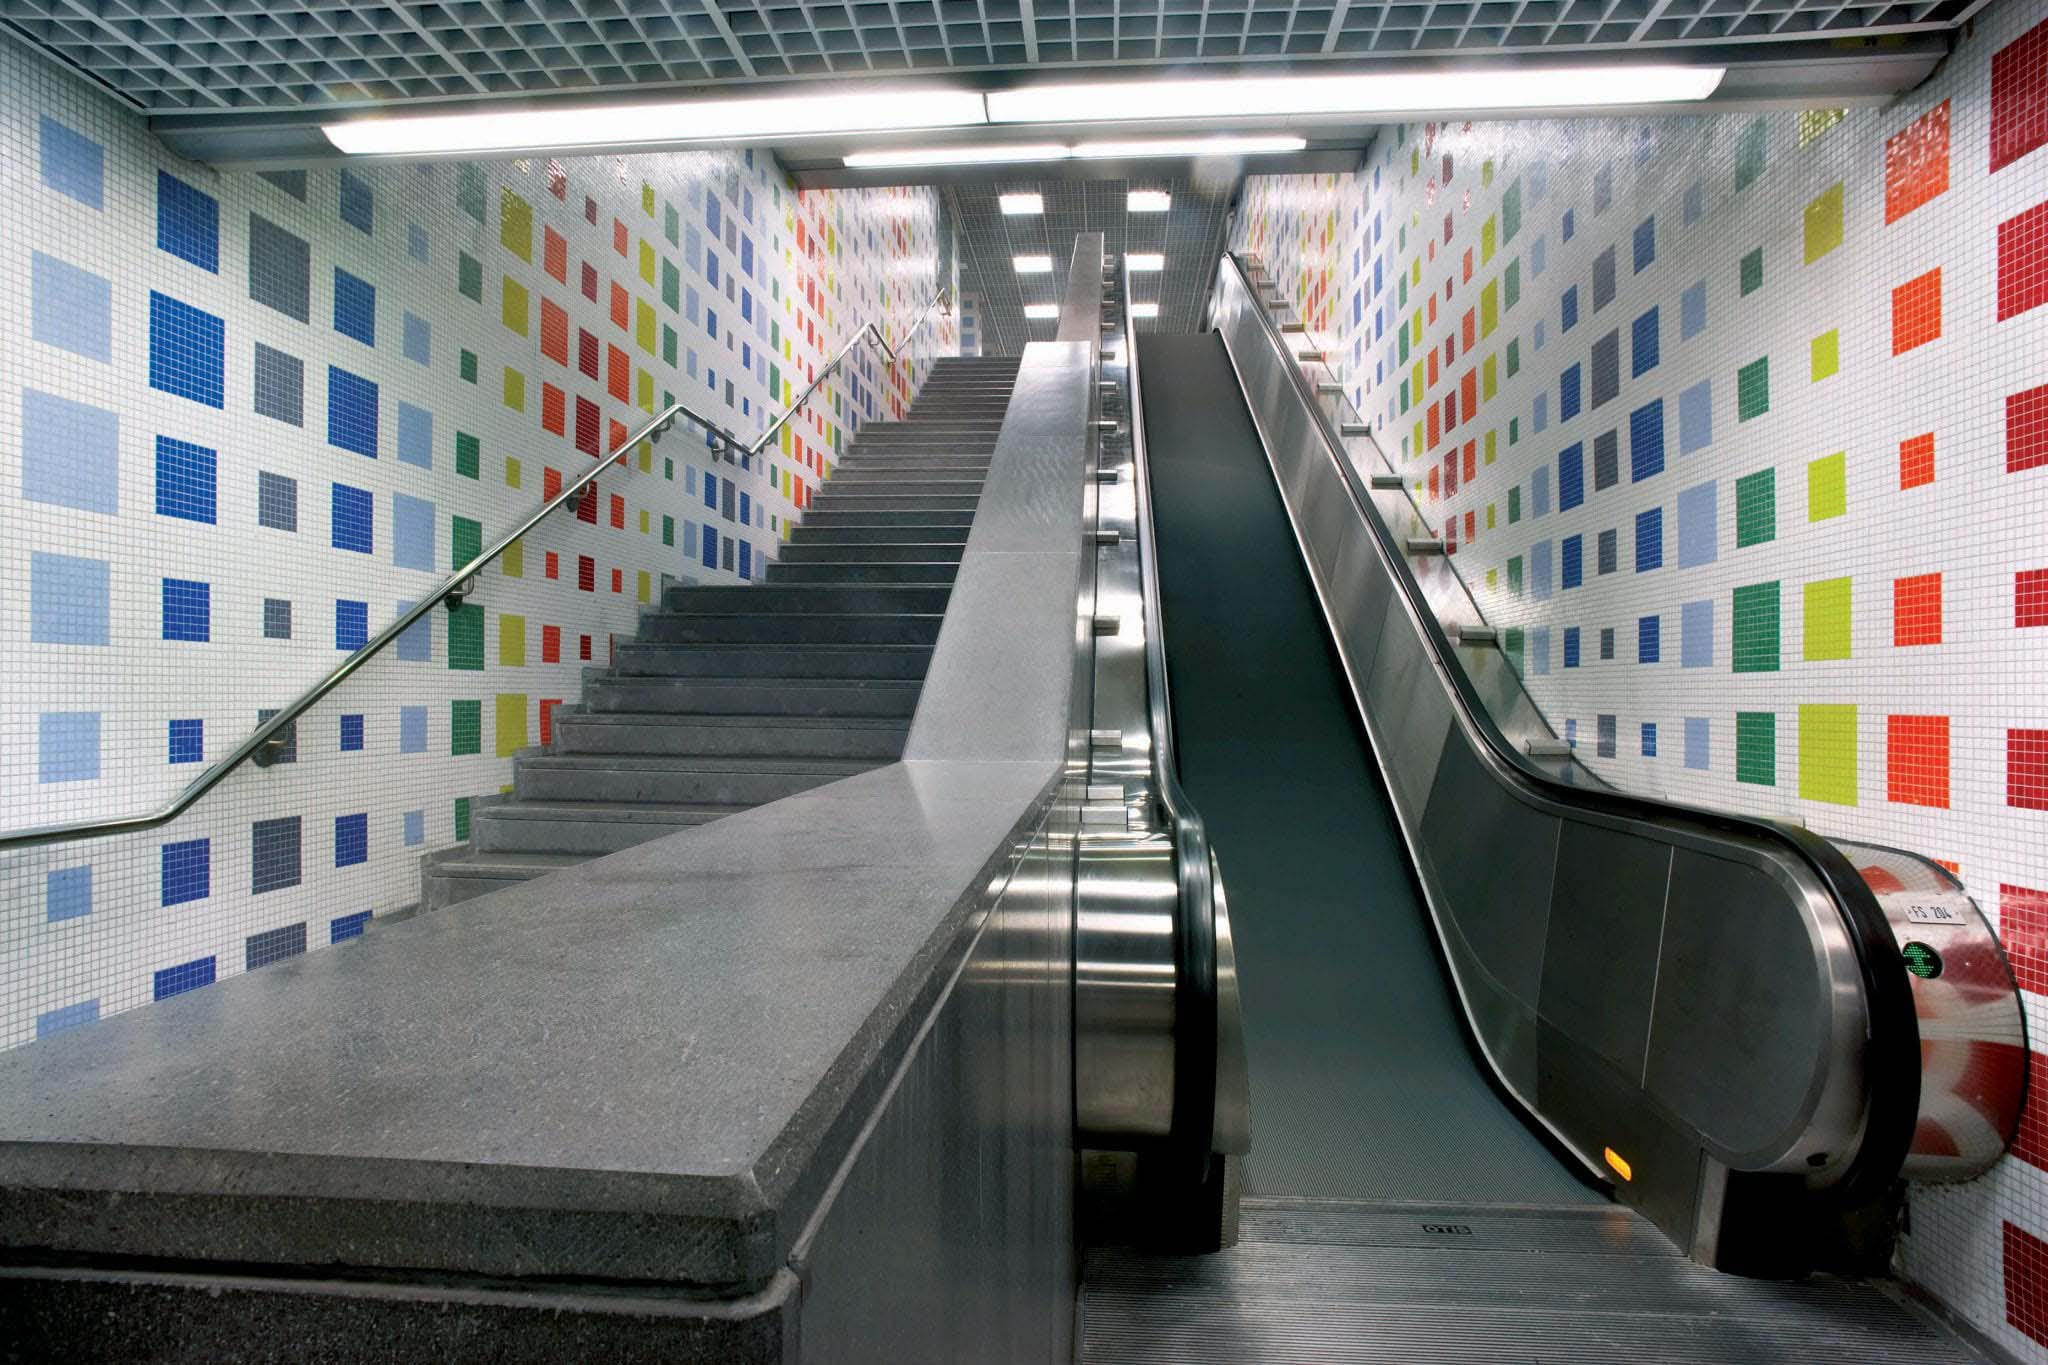 Metro Piscinola in Naples, Italy Slide